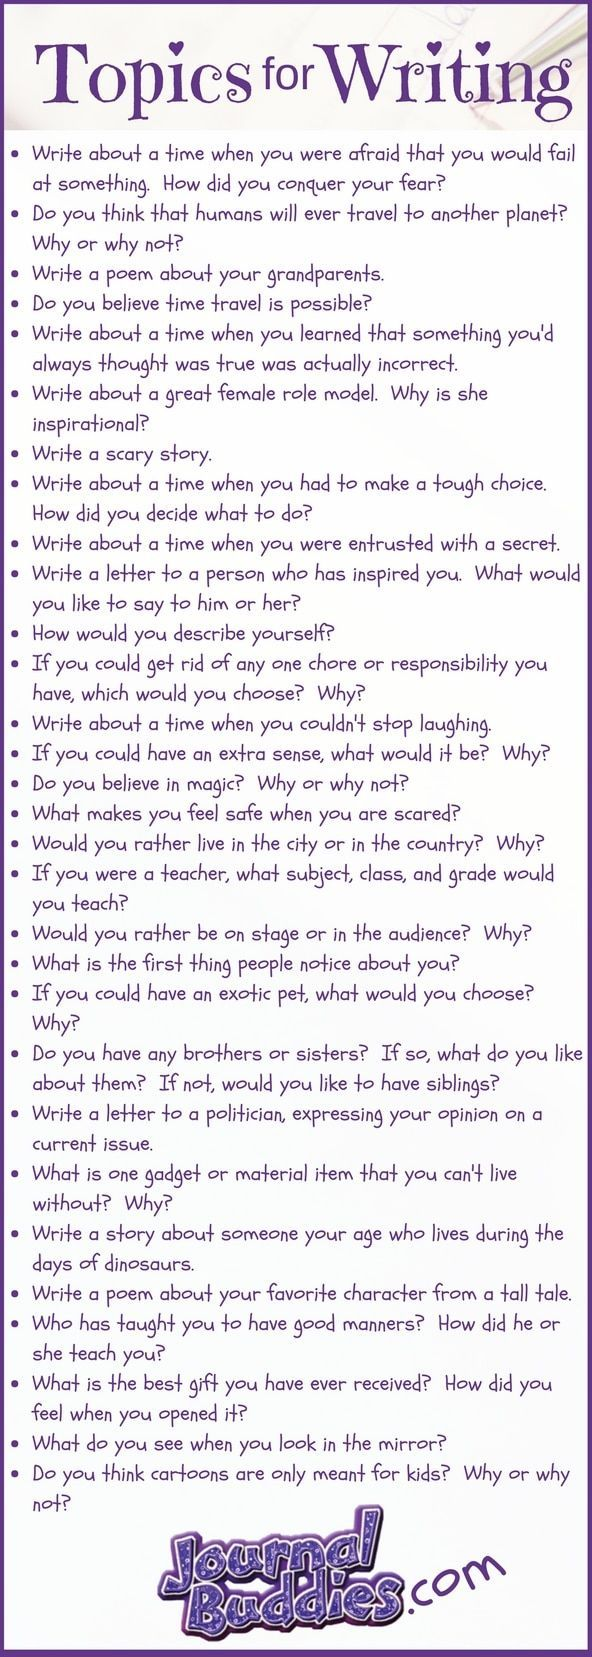 30 Topics for Writing